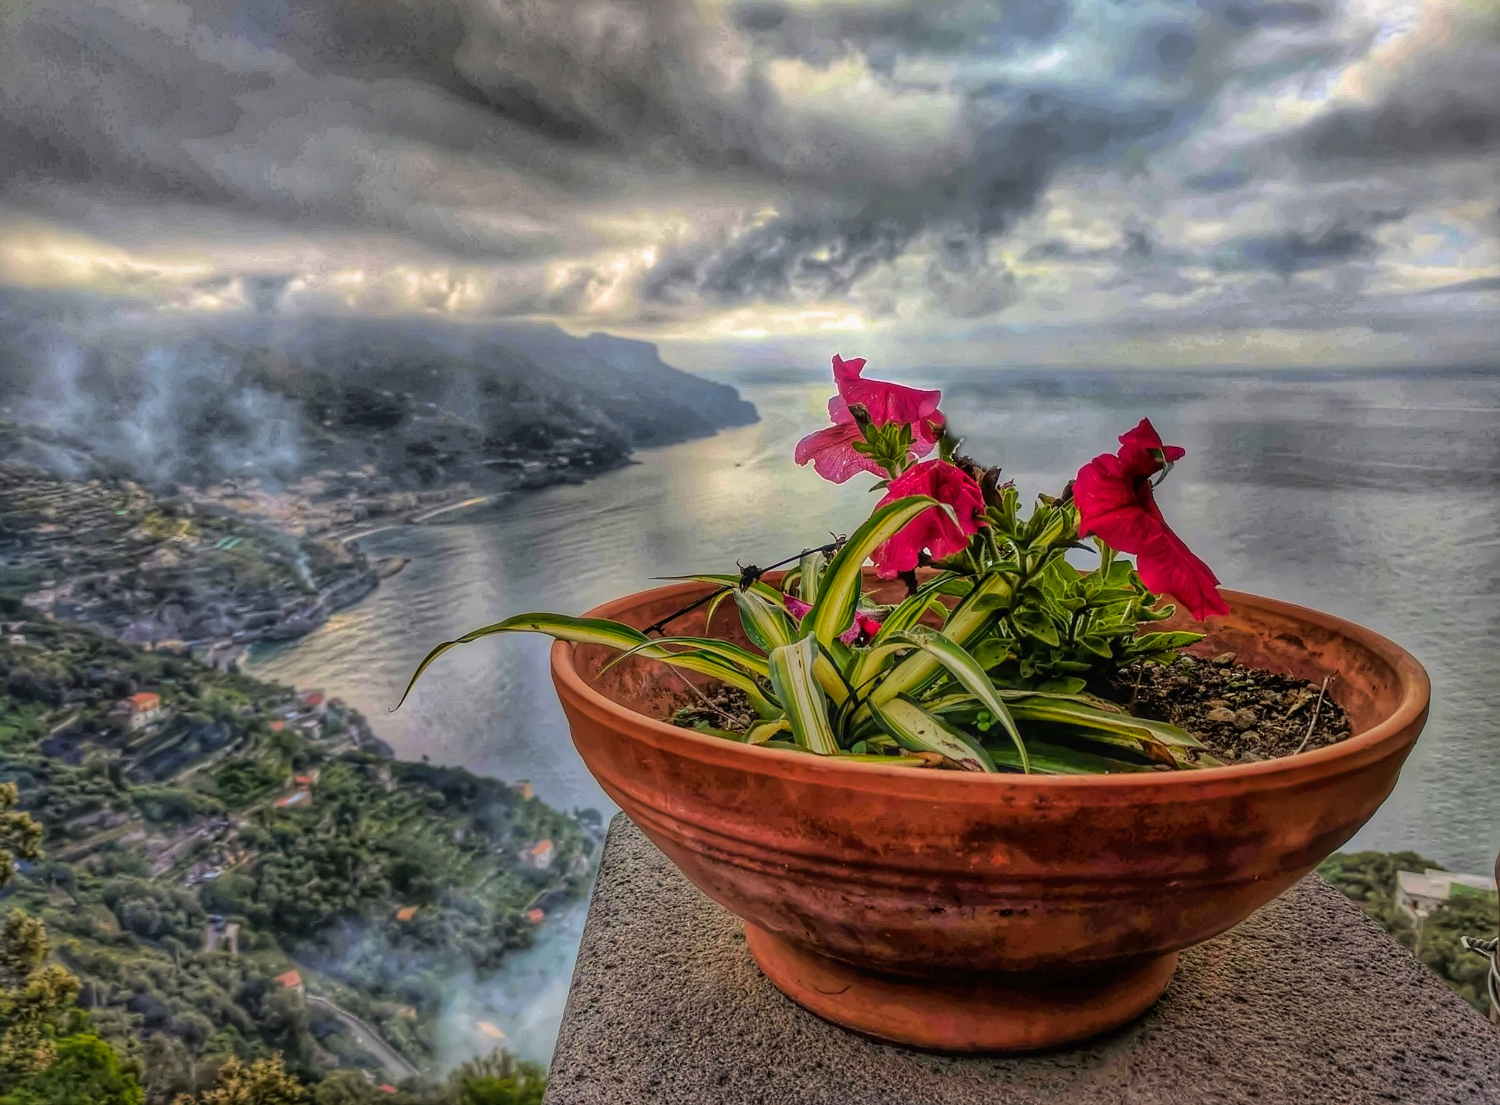 Morning glory of the Amalfi Coast as seen from Giuliana's View hotel in Ravello.